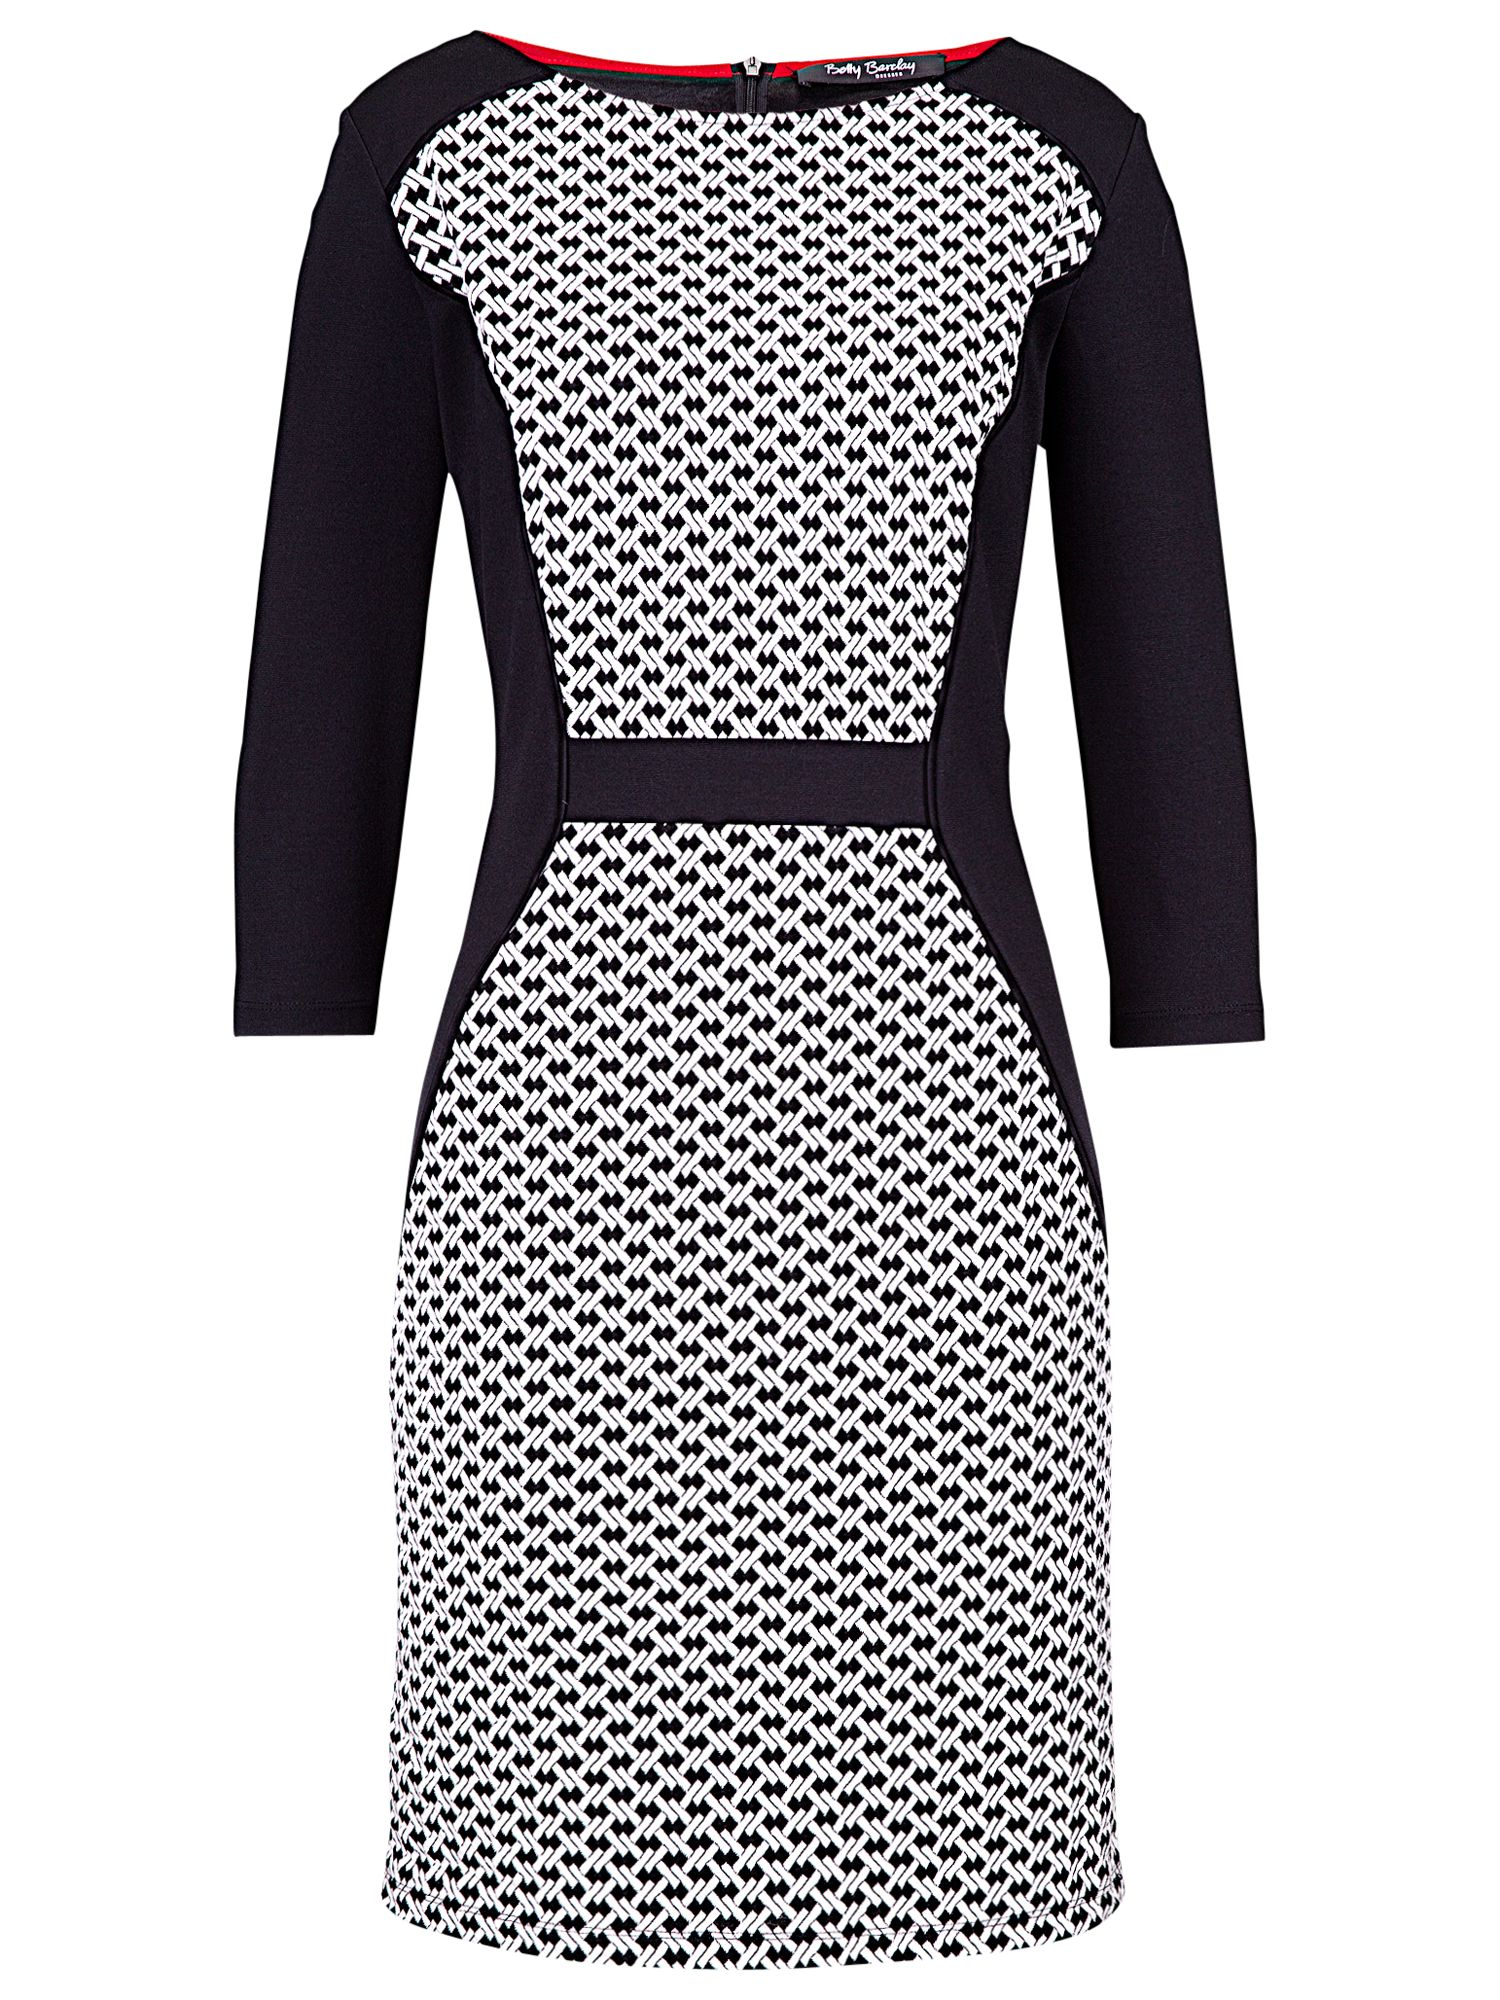 betty barclay three-quarter sleeve patterned dress black, betty, barclay, three-quarter, sleeve, patterned, dress, black, betty barclay, 22|14, clearance, womenswear offers, womens dresses offers, women, plus size, inactive womenswear, new reductions, womens dresses, special offers, 1613750